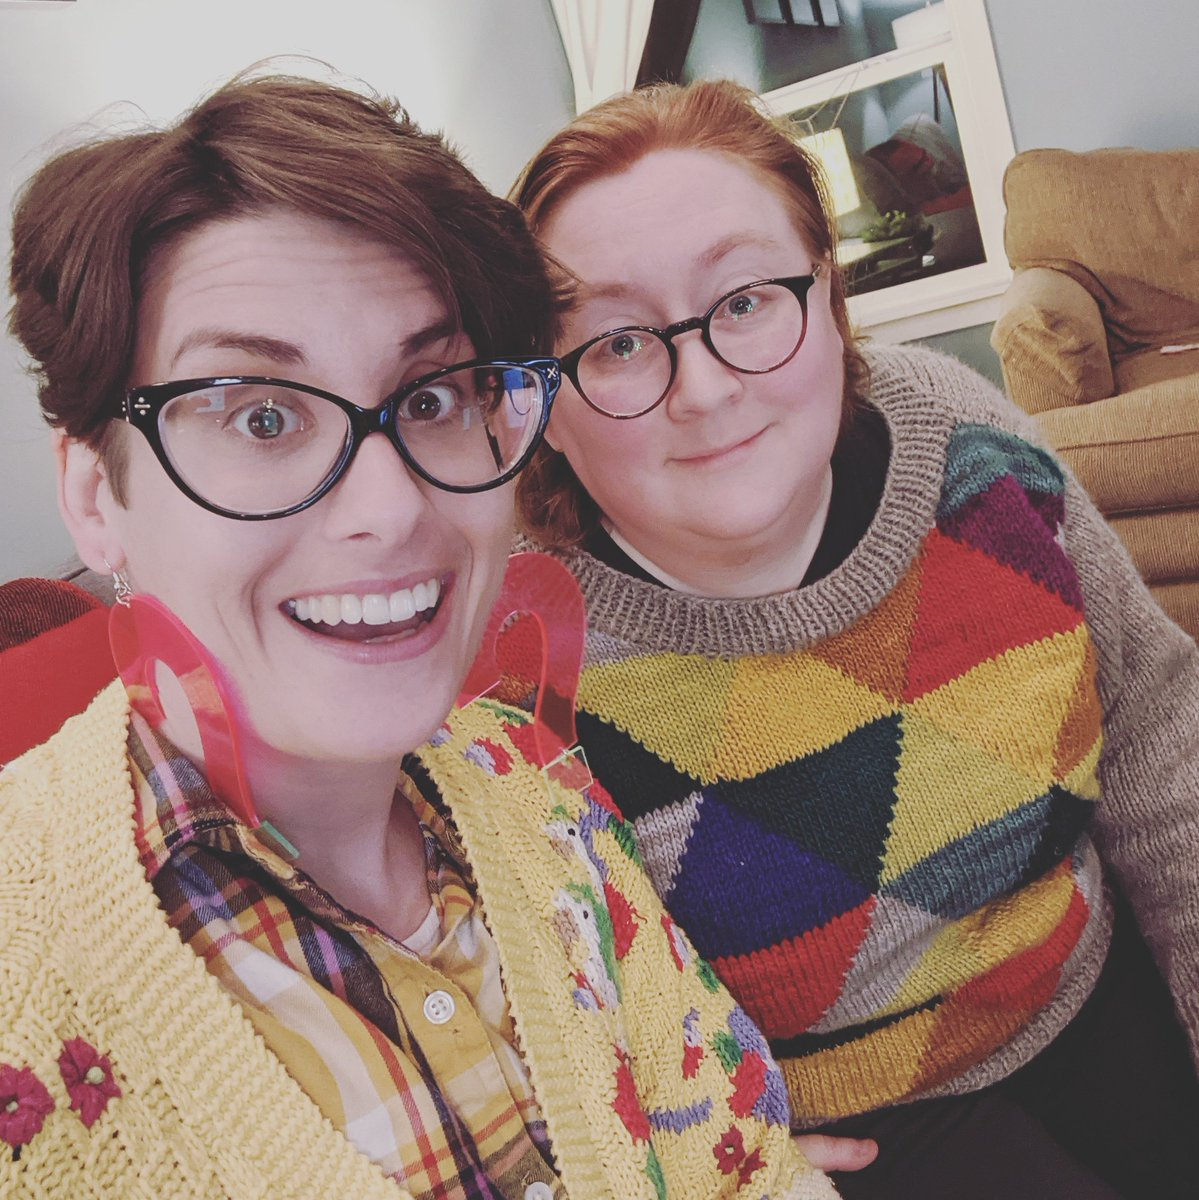 Happy #VisibleNonbinary Day from your two podcast father figures, @mxdeetwenty and @aeeeross 🏳️⚧️